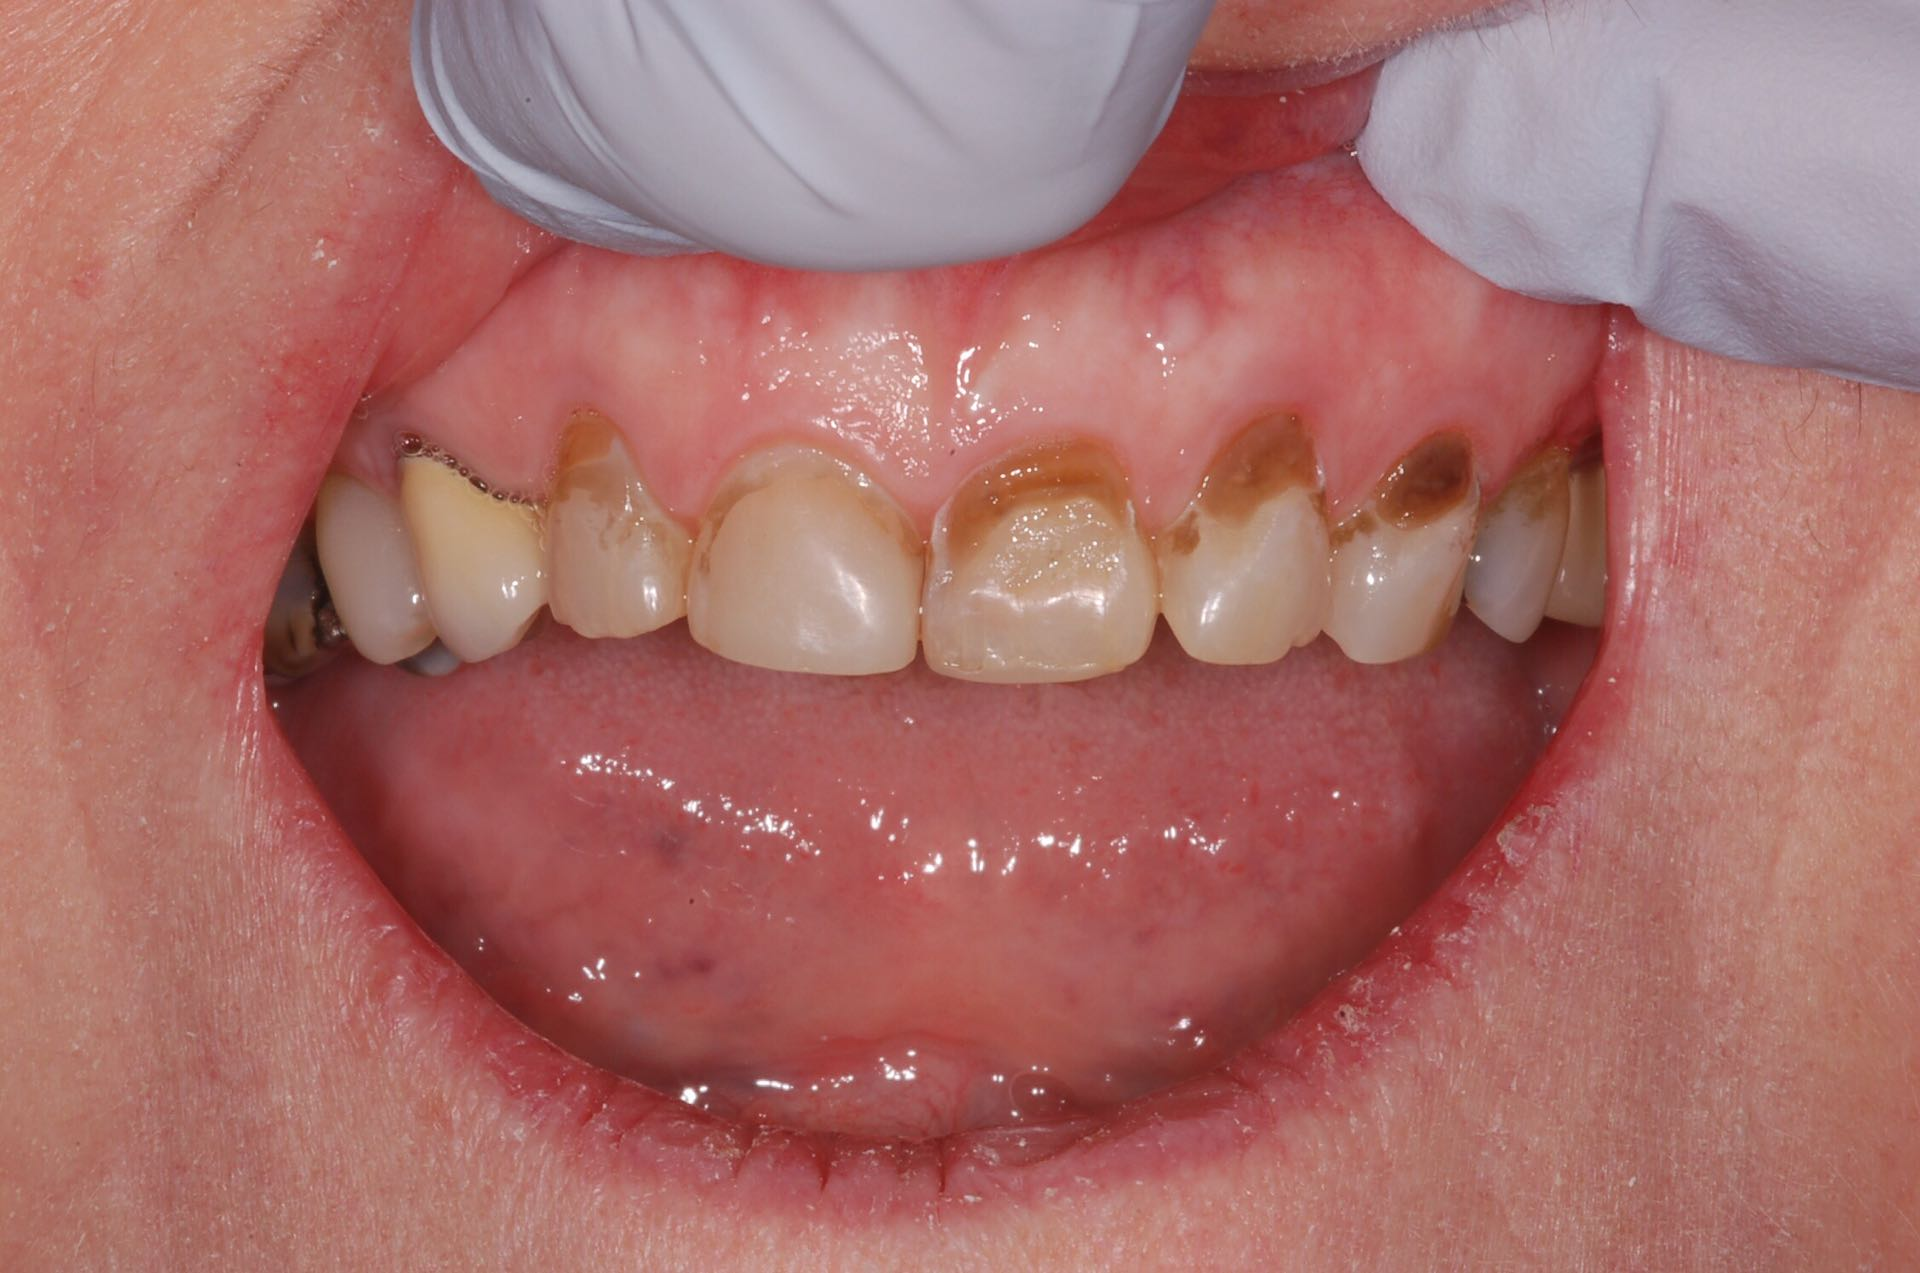 Dental erosion and staining